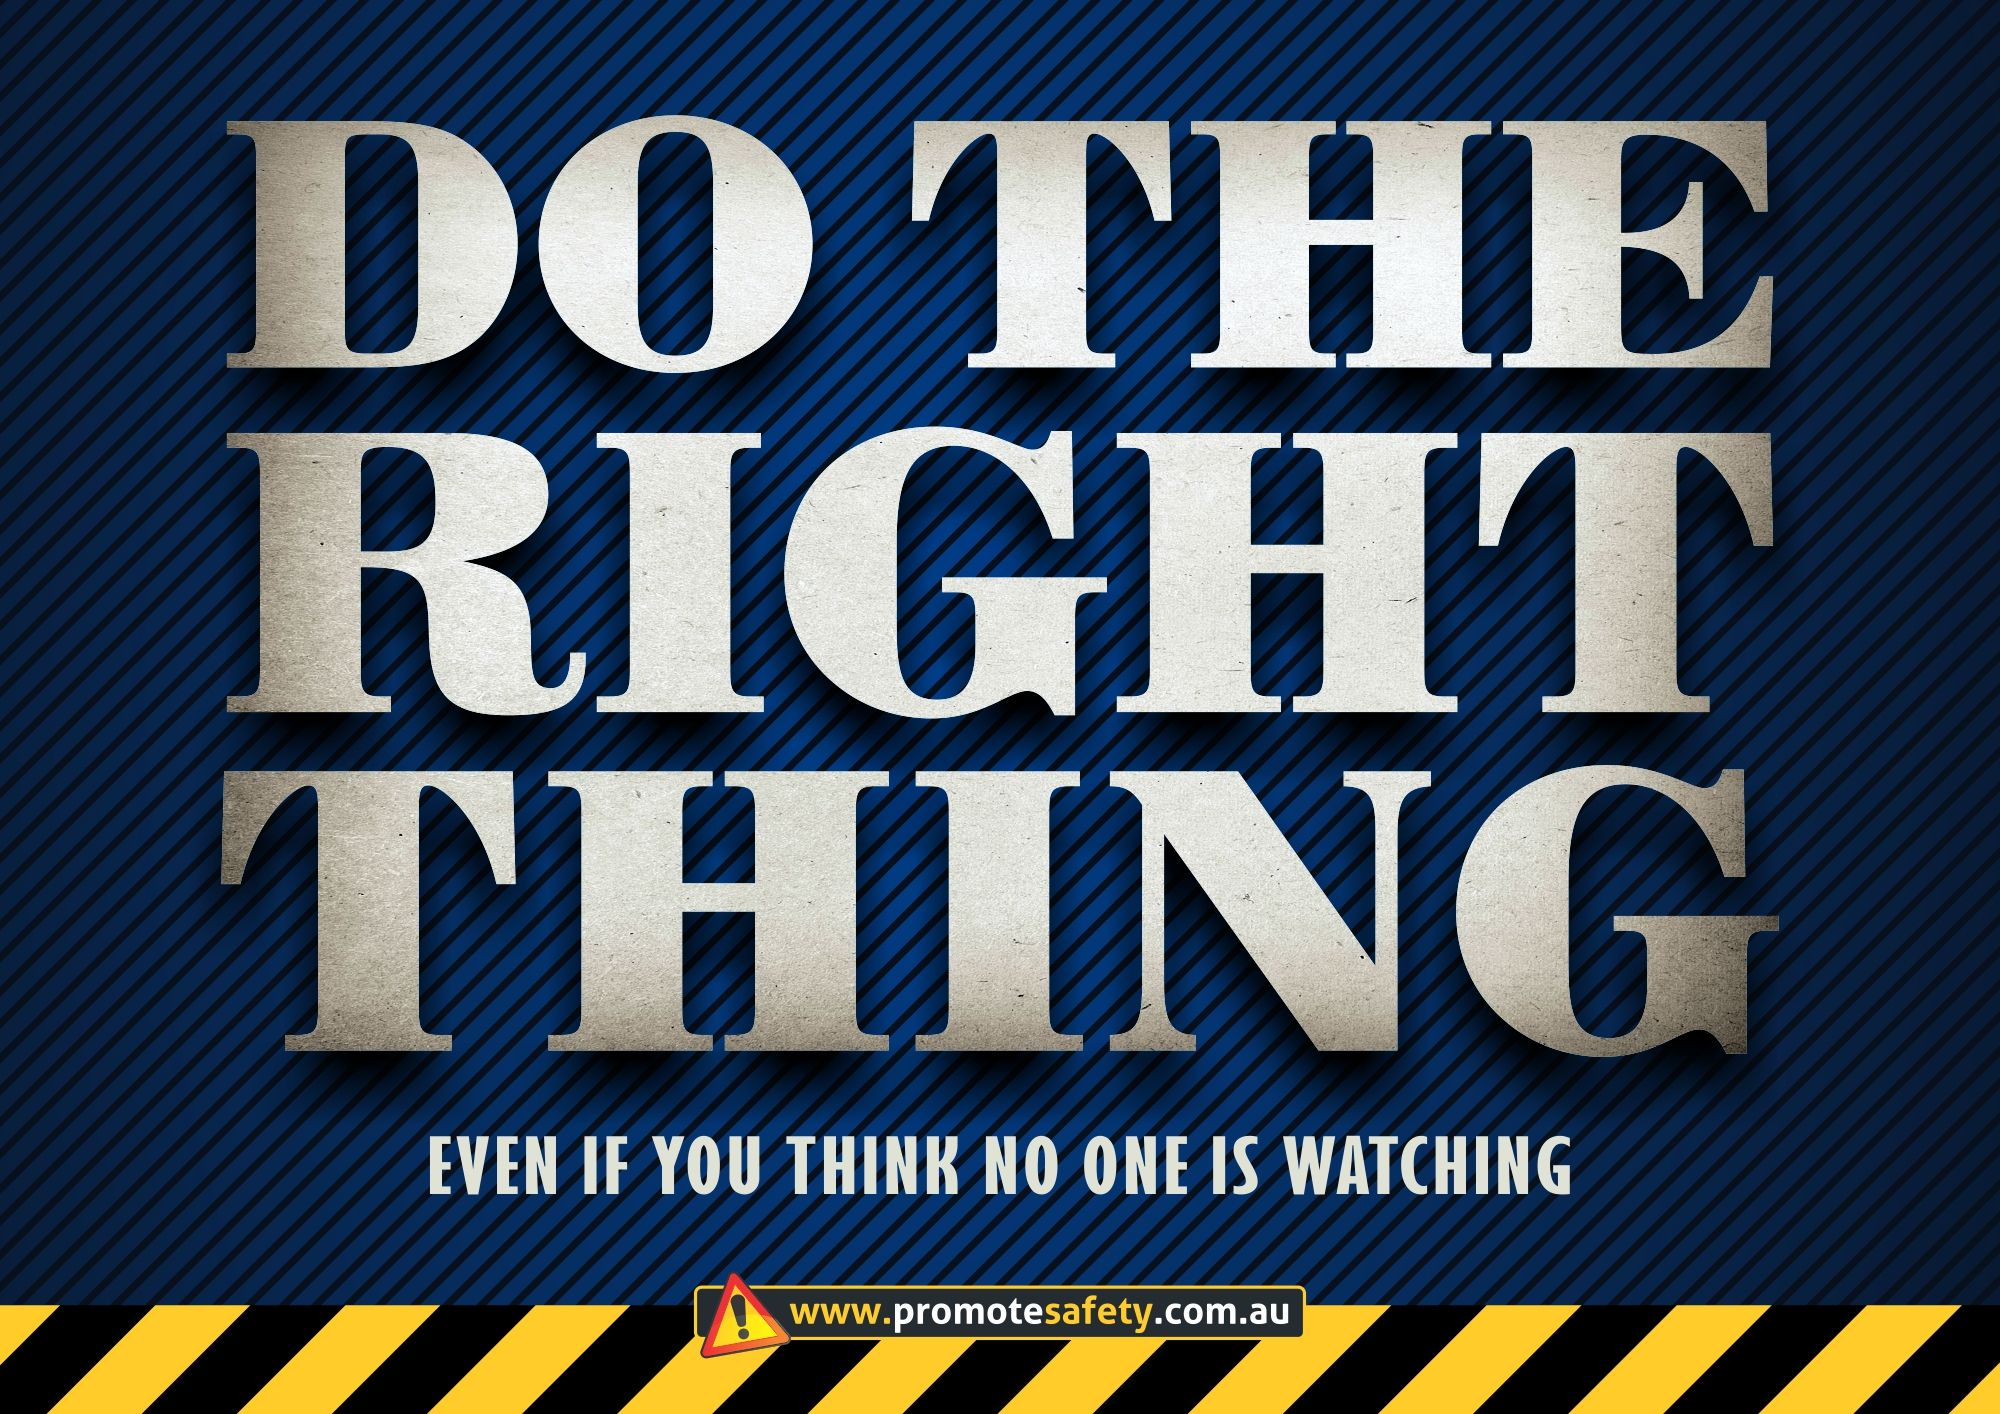 Workplace Safety & Health Slogan Do the right thing